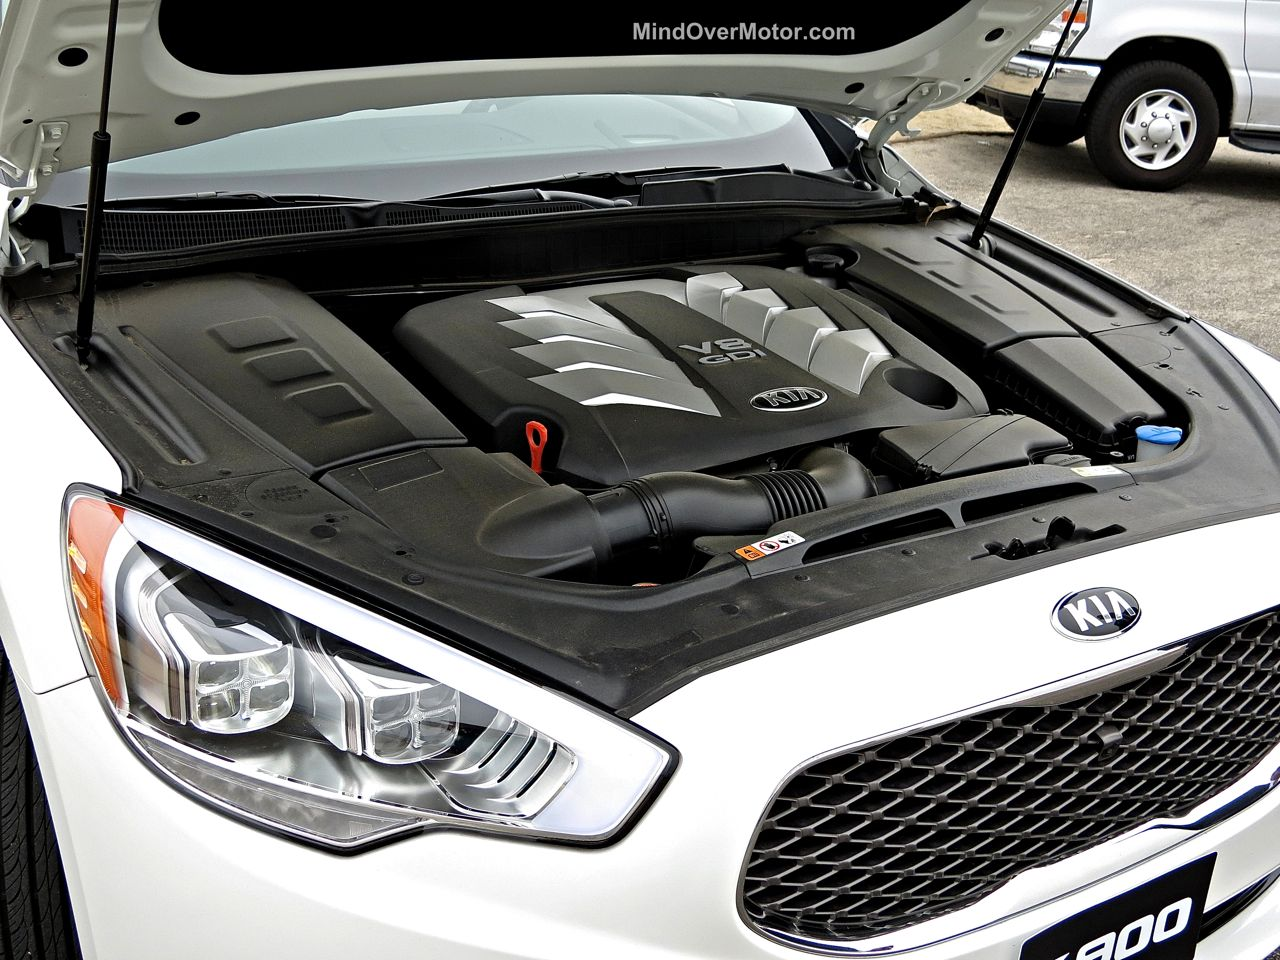 Kia K900 5.0L GDI V8 Engine